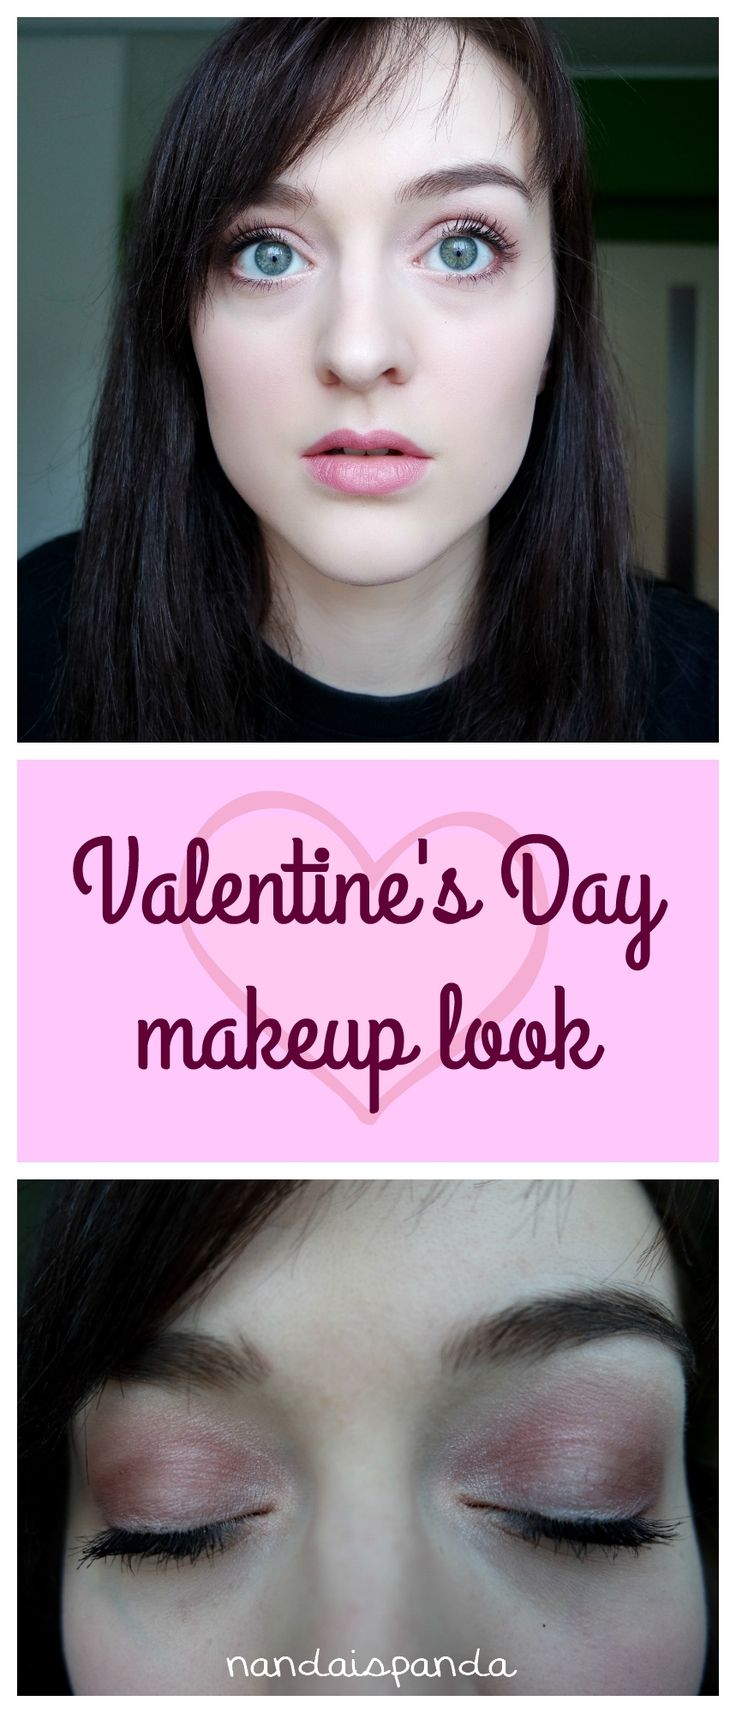 Valentine's Day, makeup, tutorial, inspiration, idea, makeup look, pink, cosmetics, affordable, budget, drugstore